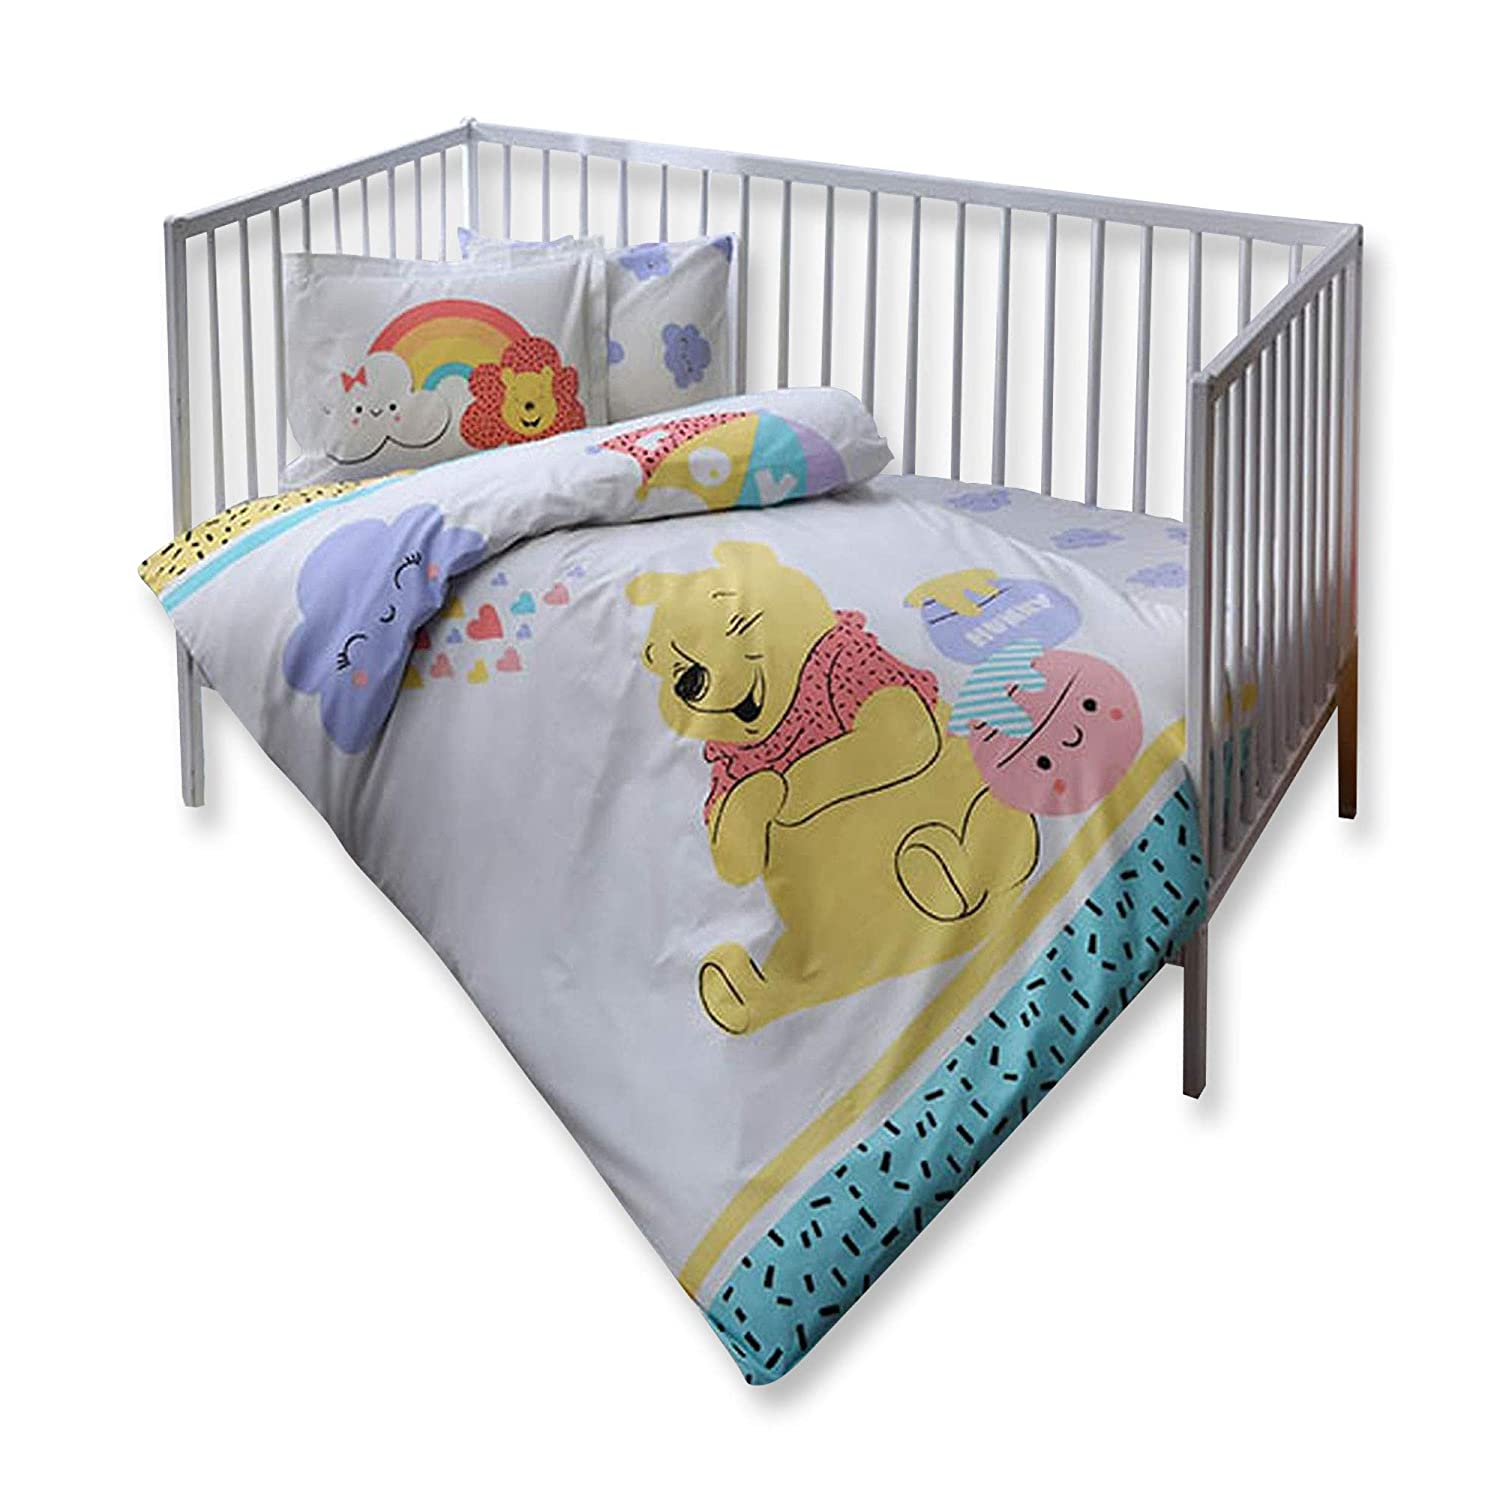 100% Organic Cotton Soft and Healthy Baby Cot Bed Duvet Cover Set 4 Pieces, Winnie The Pooh Hunny Officially Licensed Bedding Set TAC